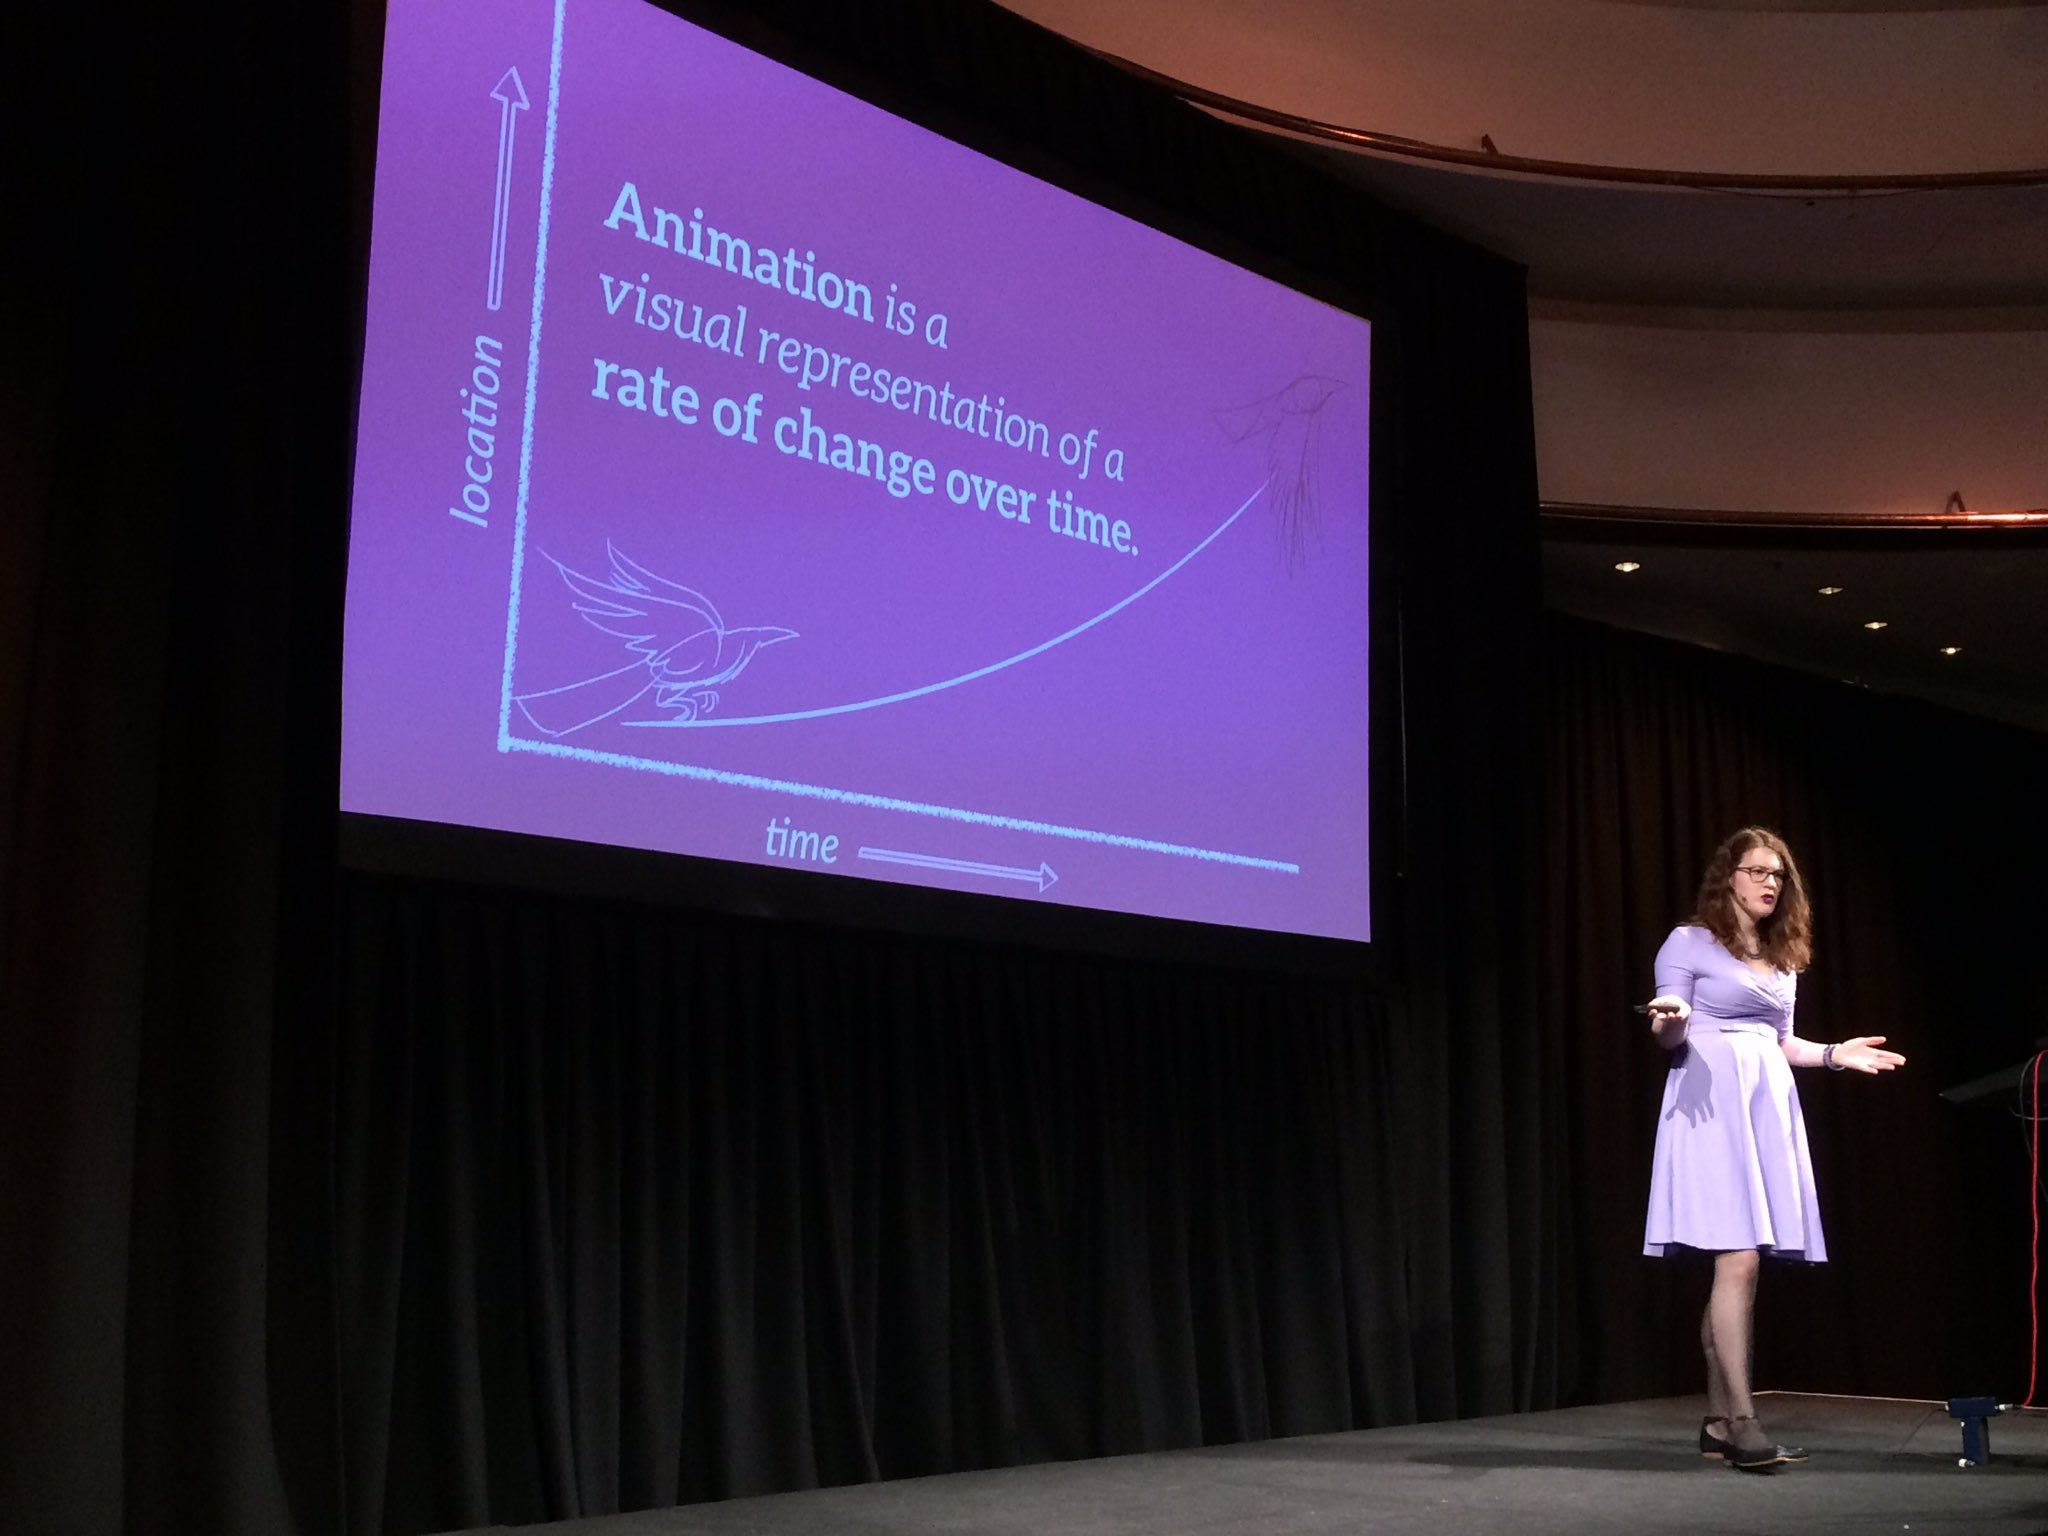 """What is animation? """"A visual representation of a rate of change over time."""" @rachelnabors #respond17 https://t.co/eidR0oCaM6"""